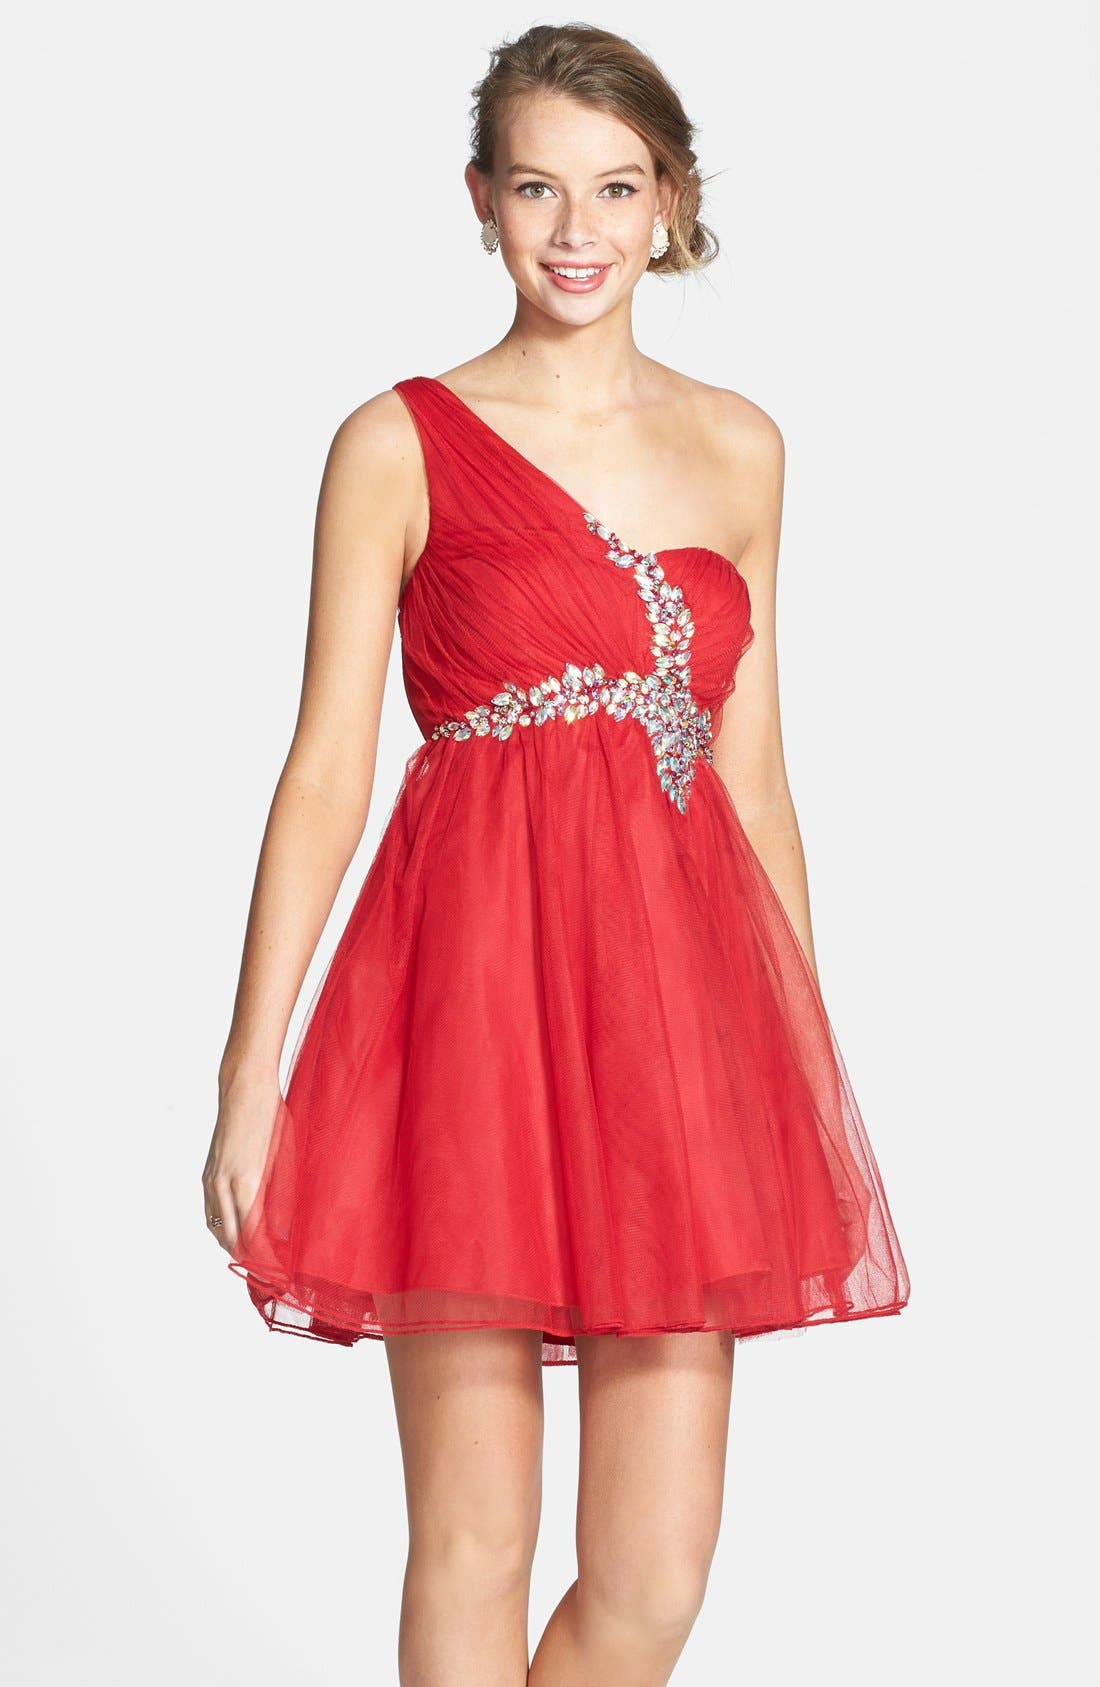 Main Image - Sequin Hearts Single Shoulder Party Dress (Juniors)